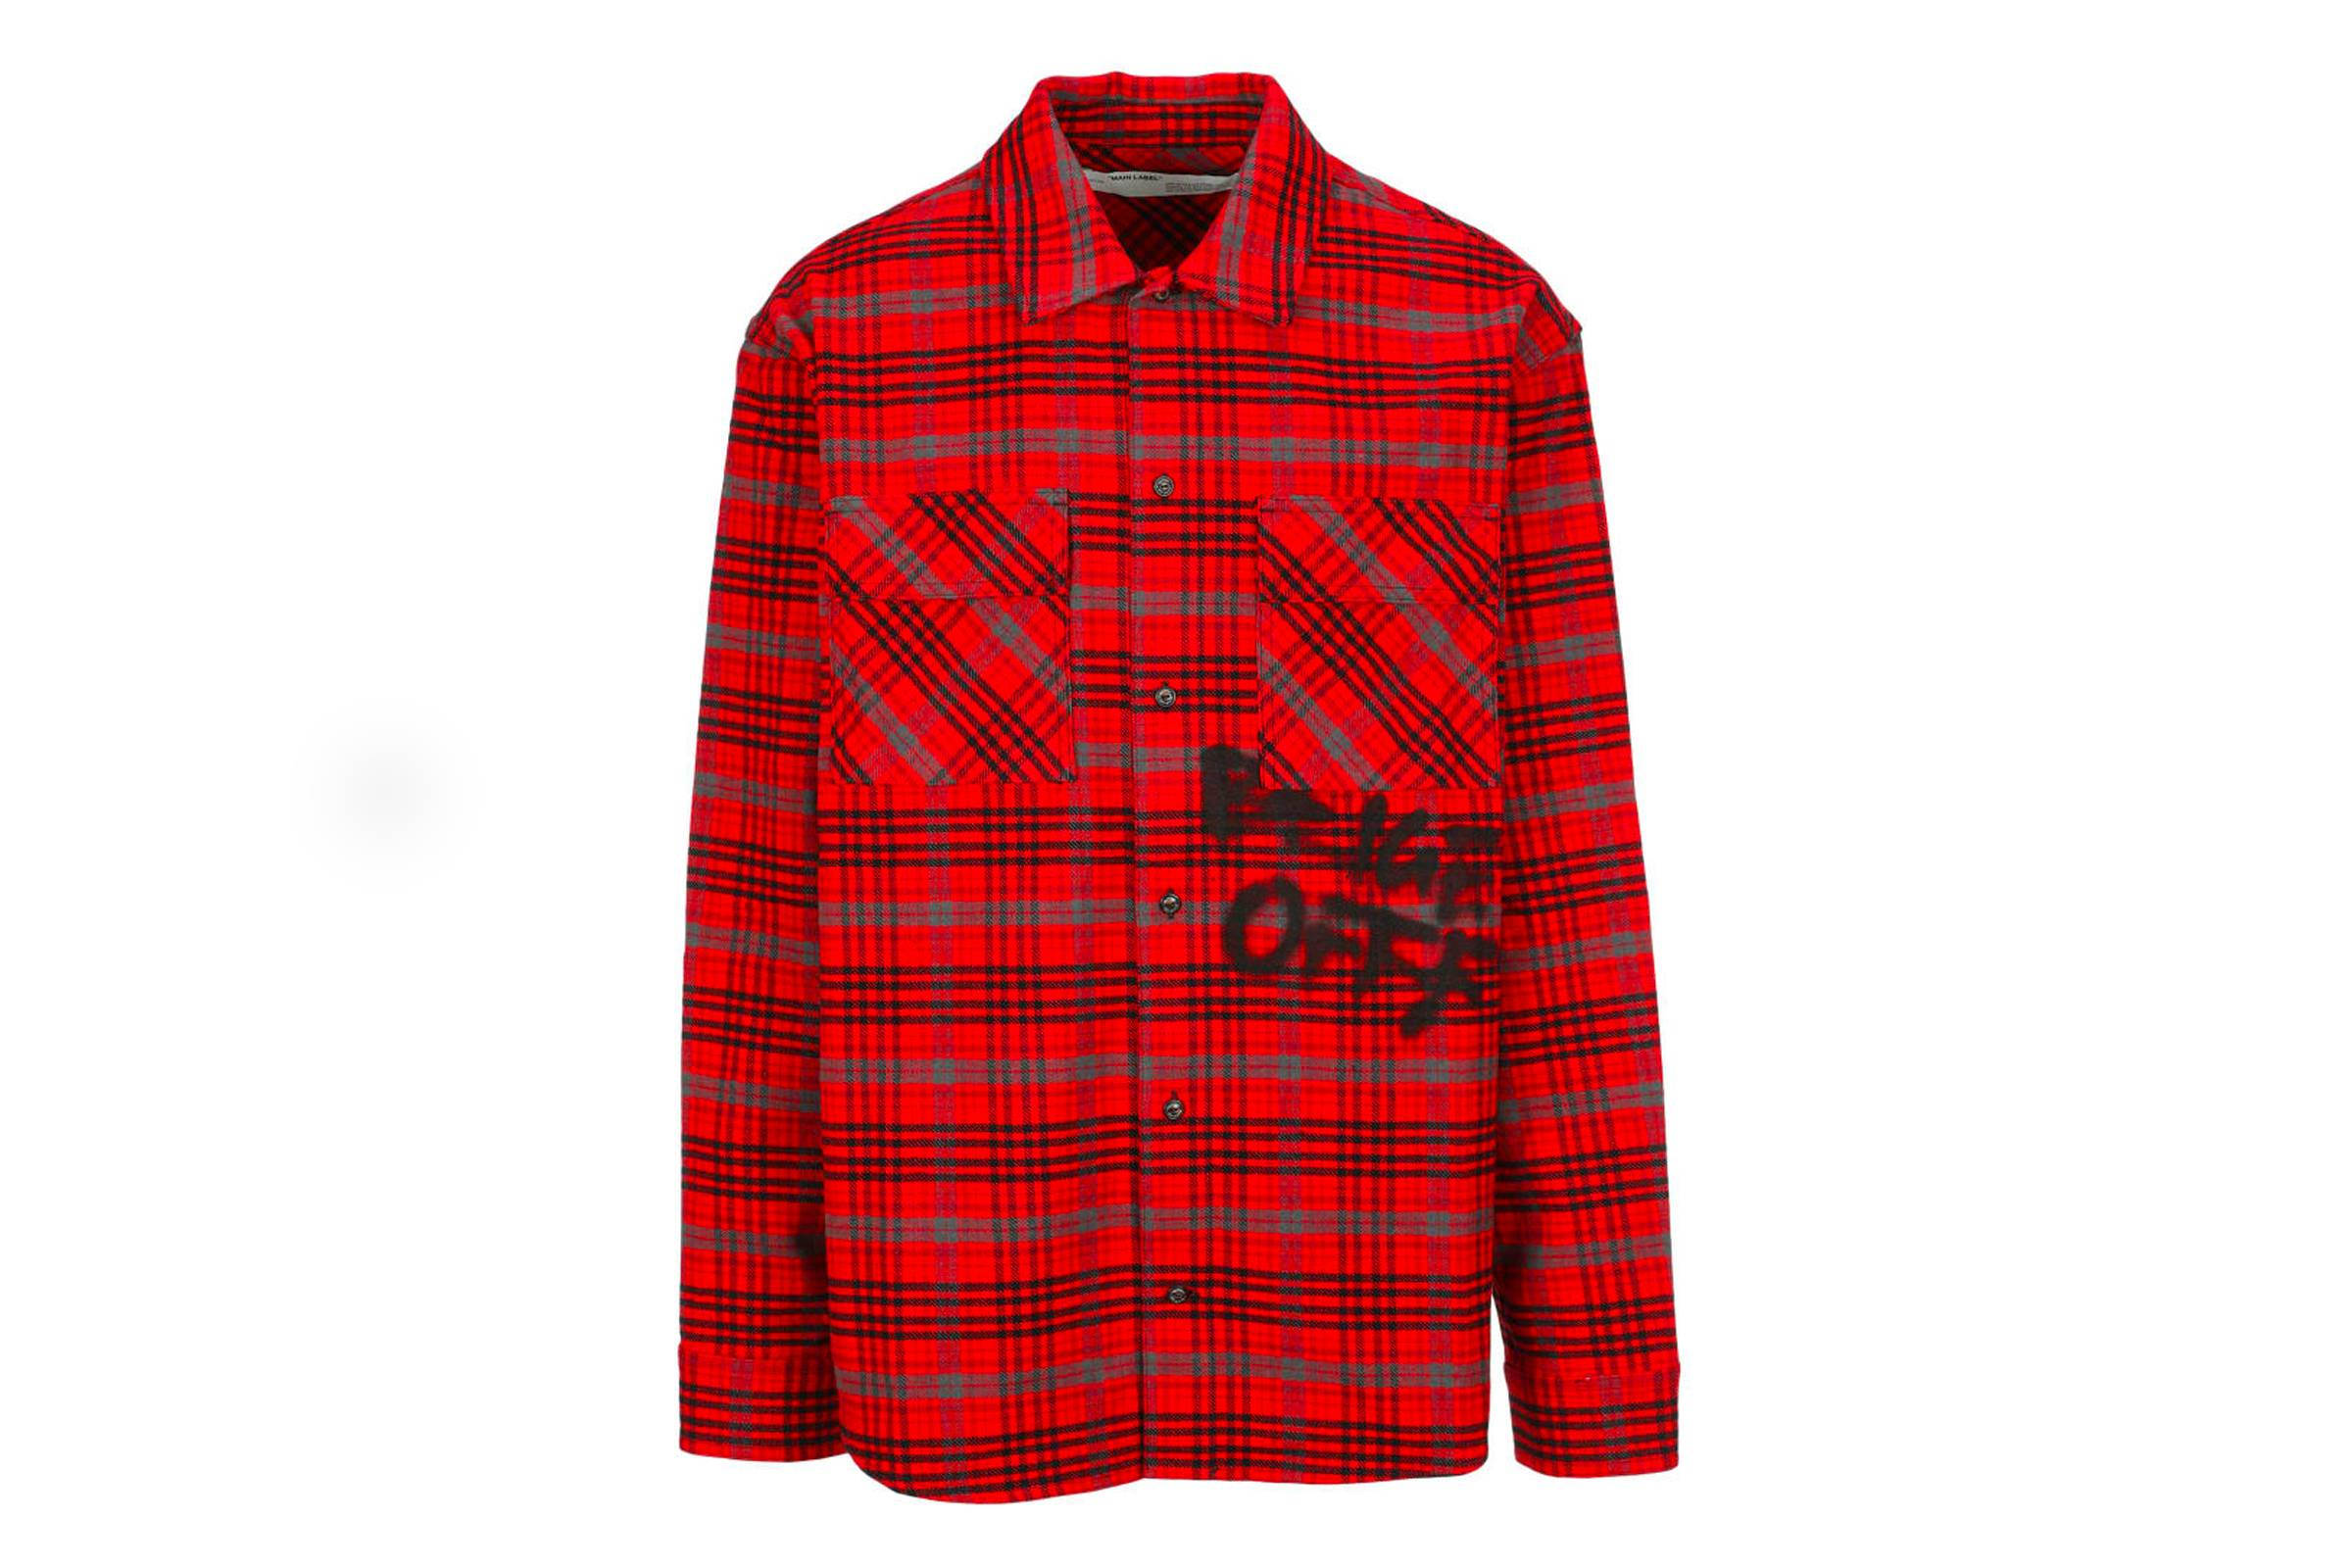 5. Off-White Flannel Shirt